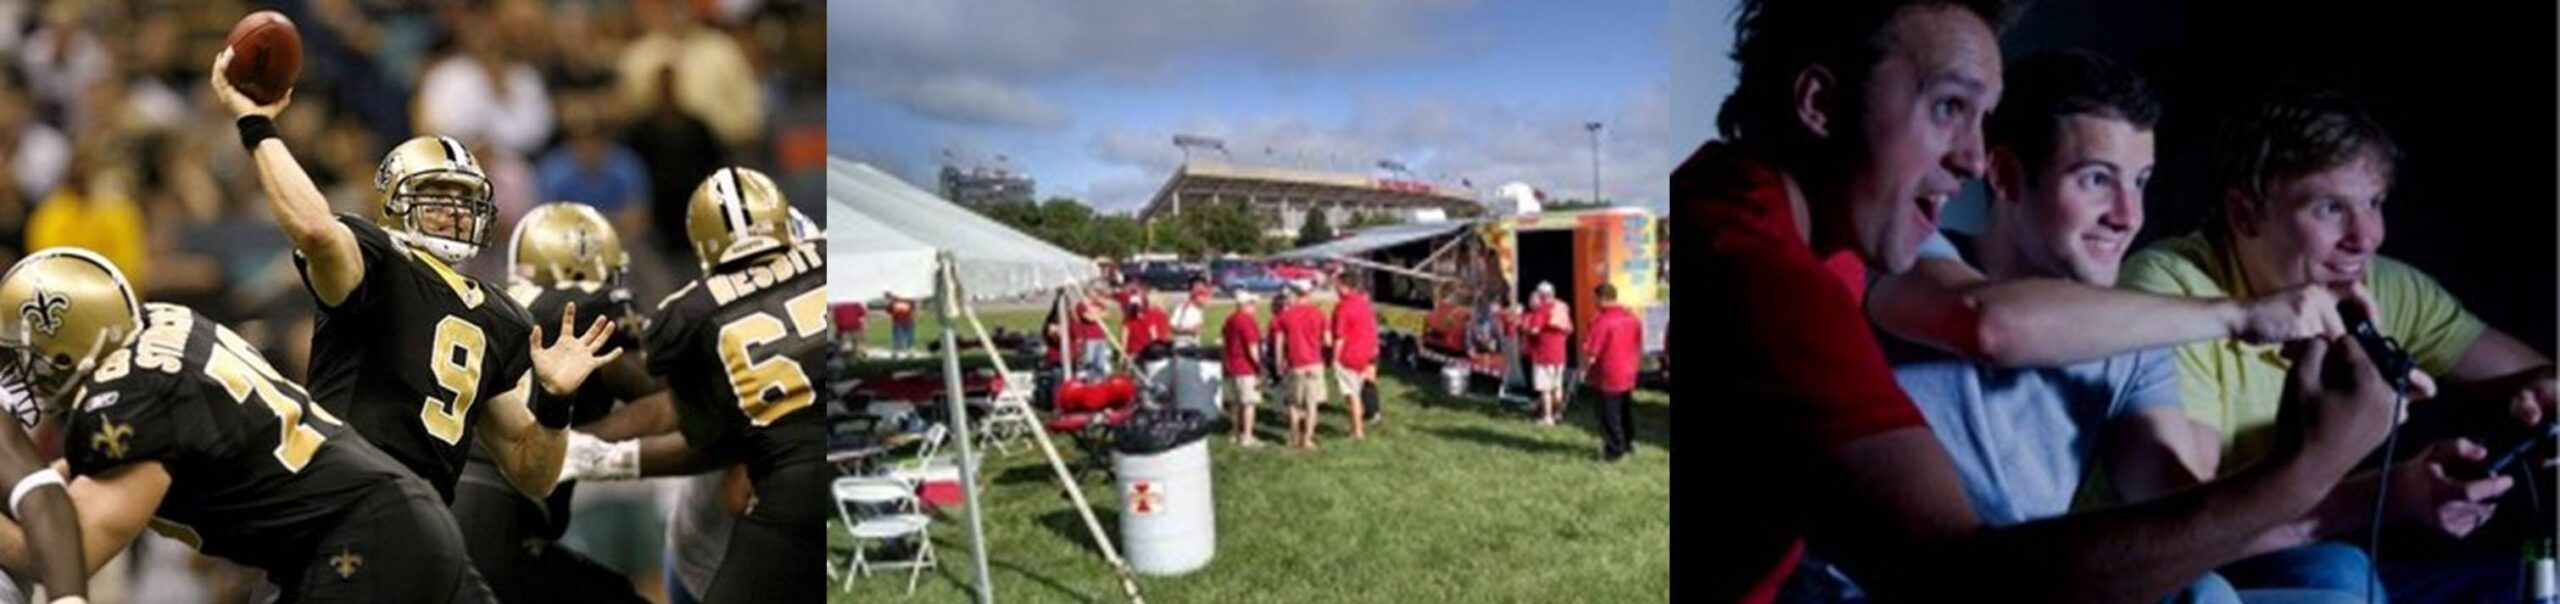 Tailgate party sports entertainment in New Orleans